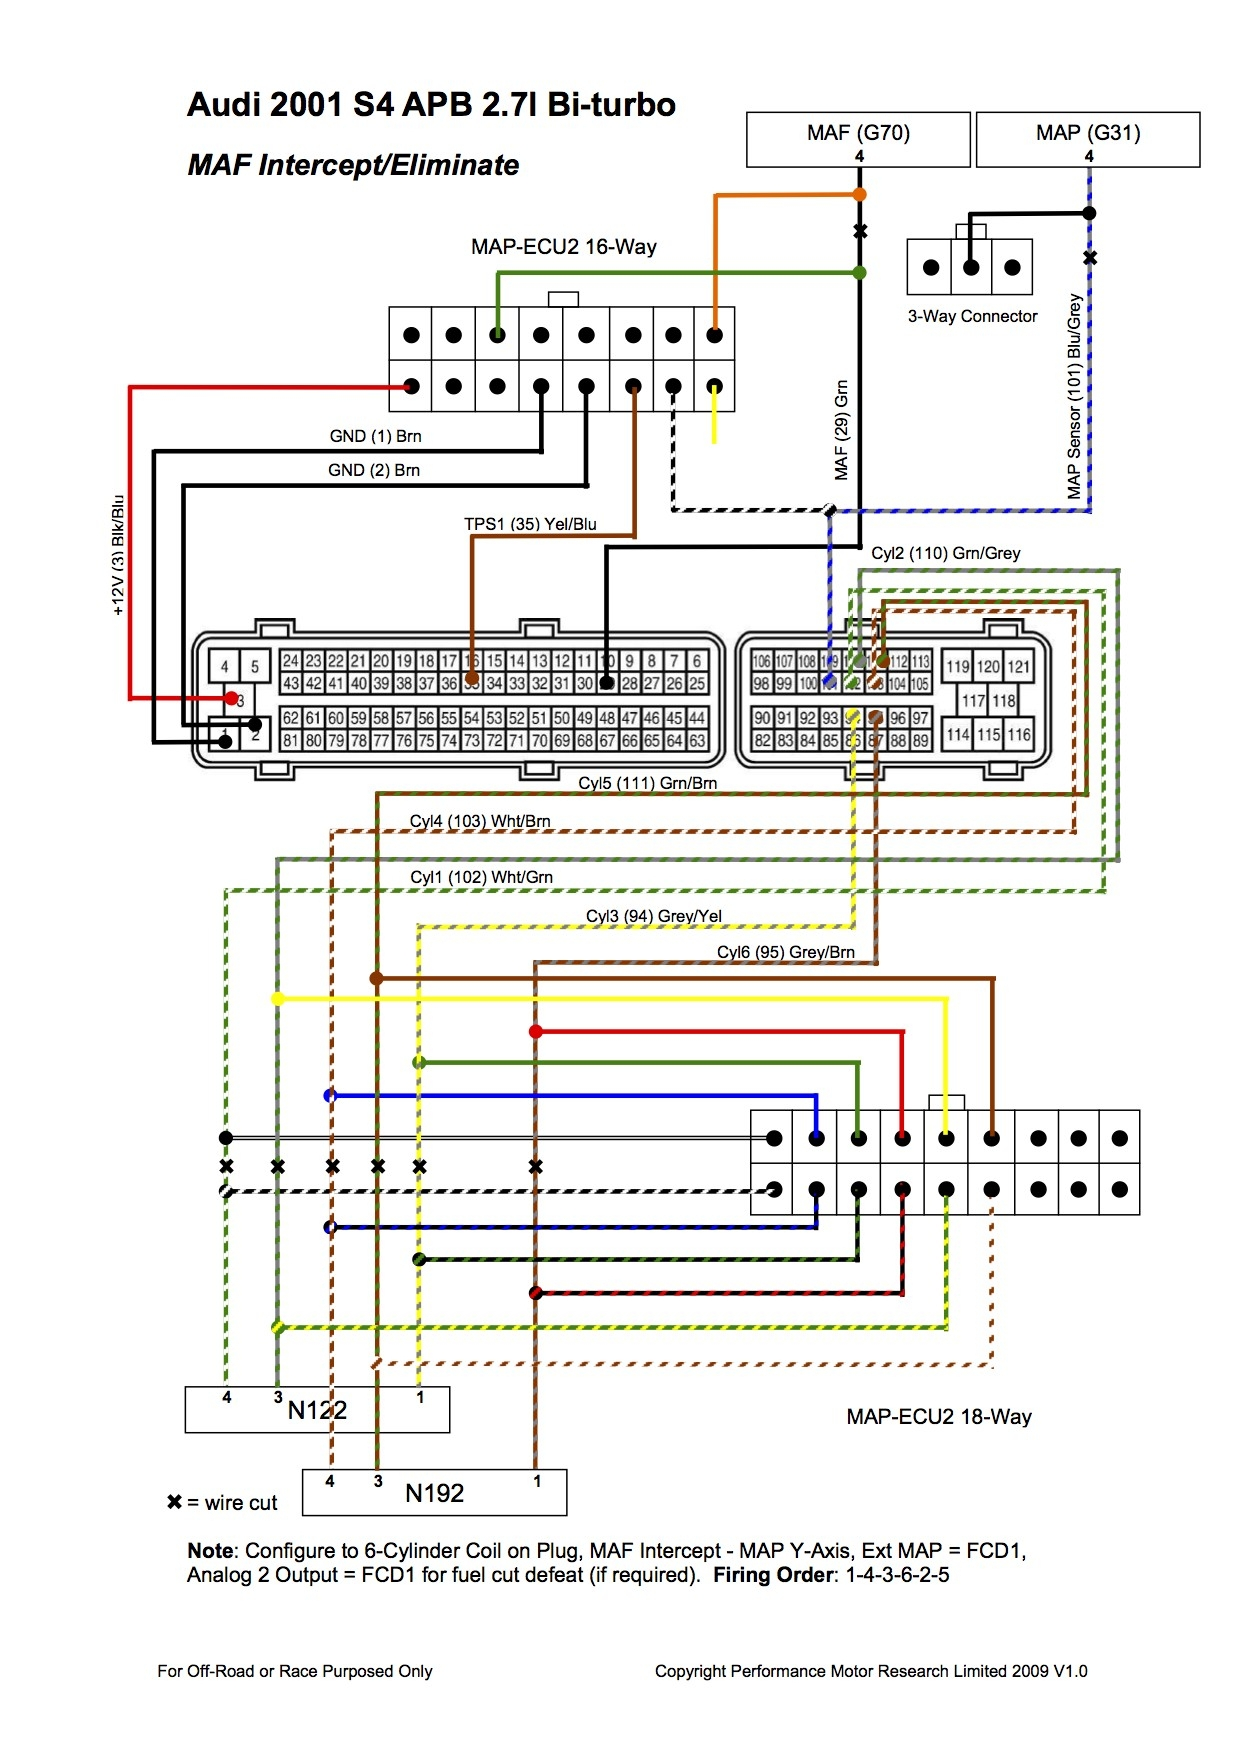 dodge 52 engine diagram - wiring diagrams button mark-breed -  mark-breed.lamorciola.it  mark-breed.lamorciola.it